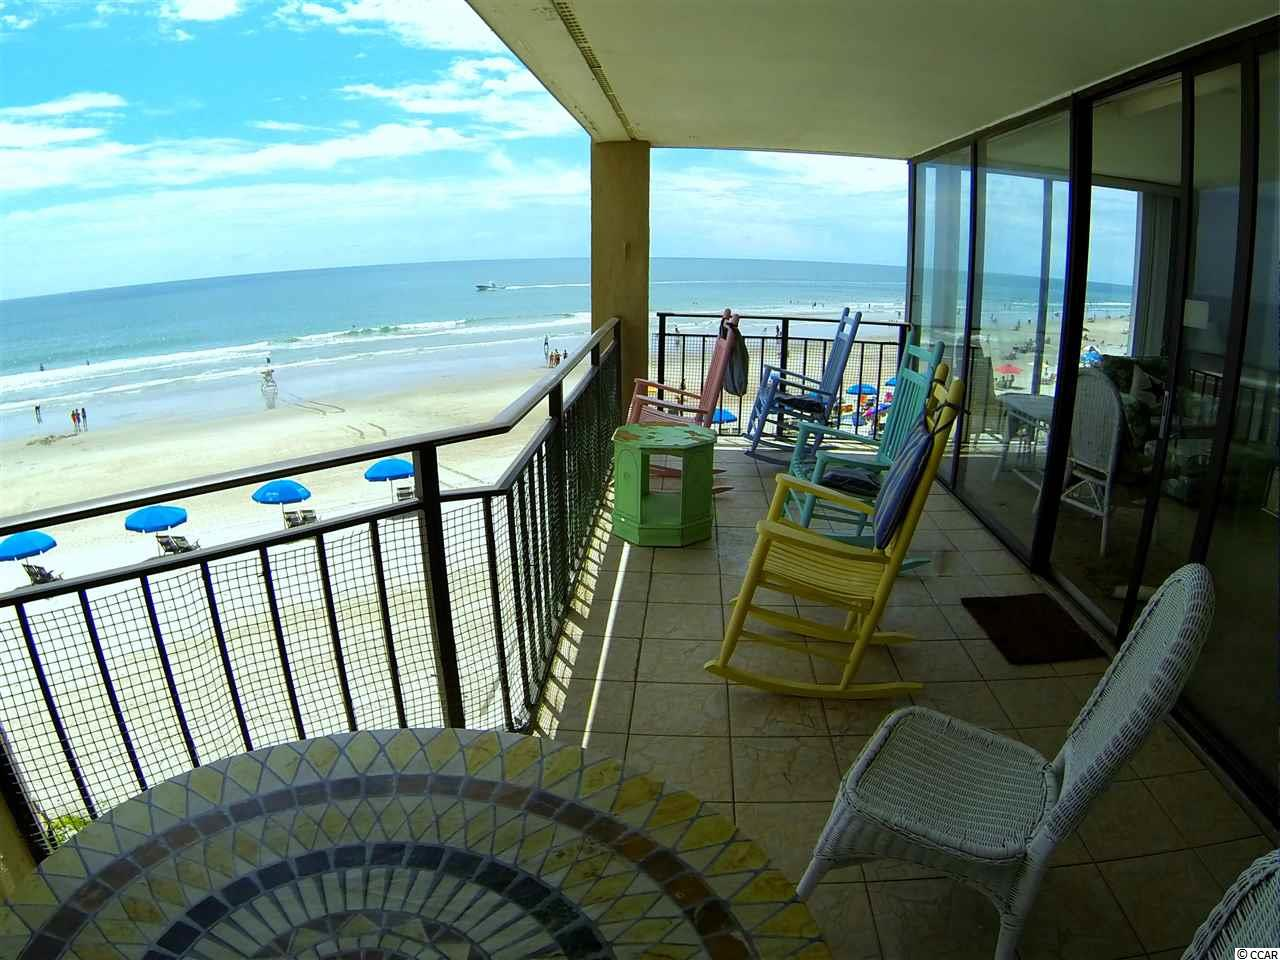 This 3 bedroom condo at  Surfmaster ! is currently for sale